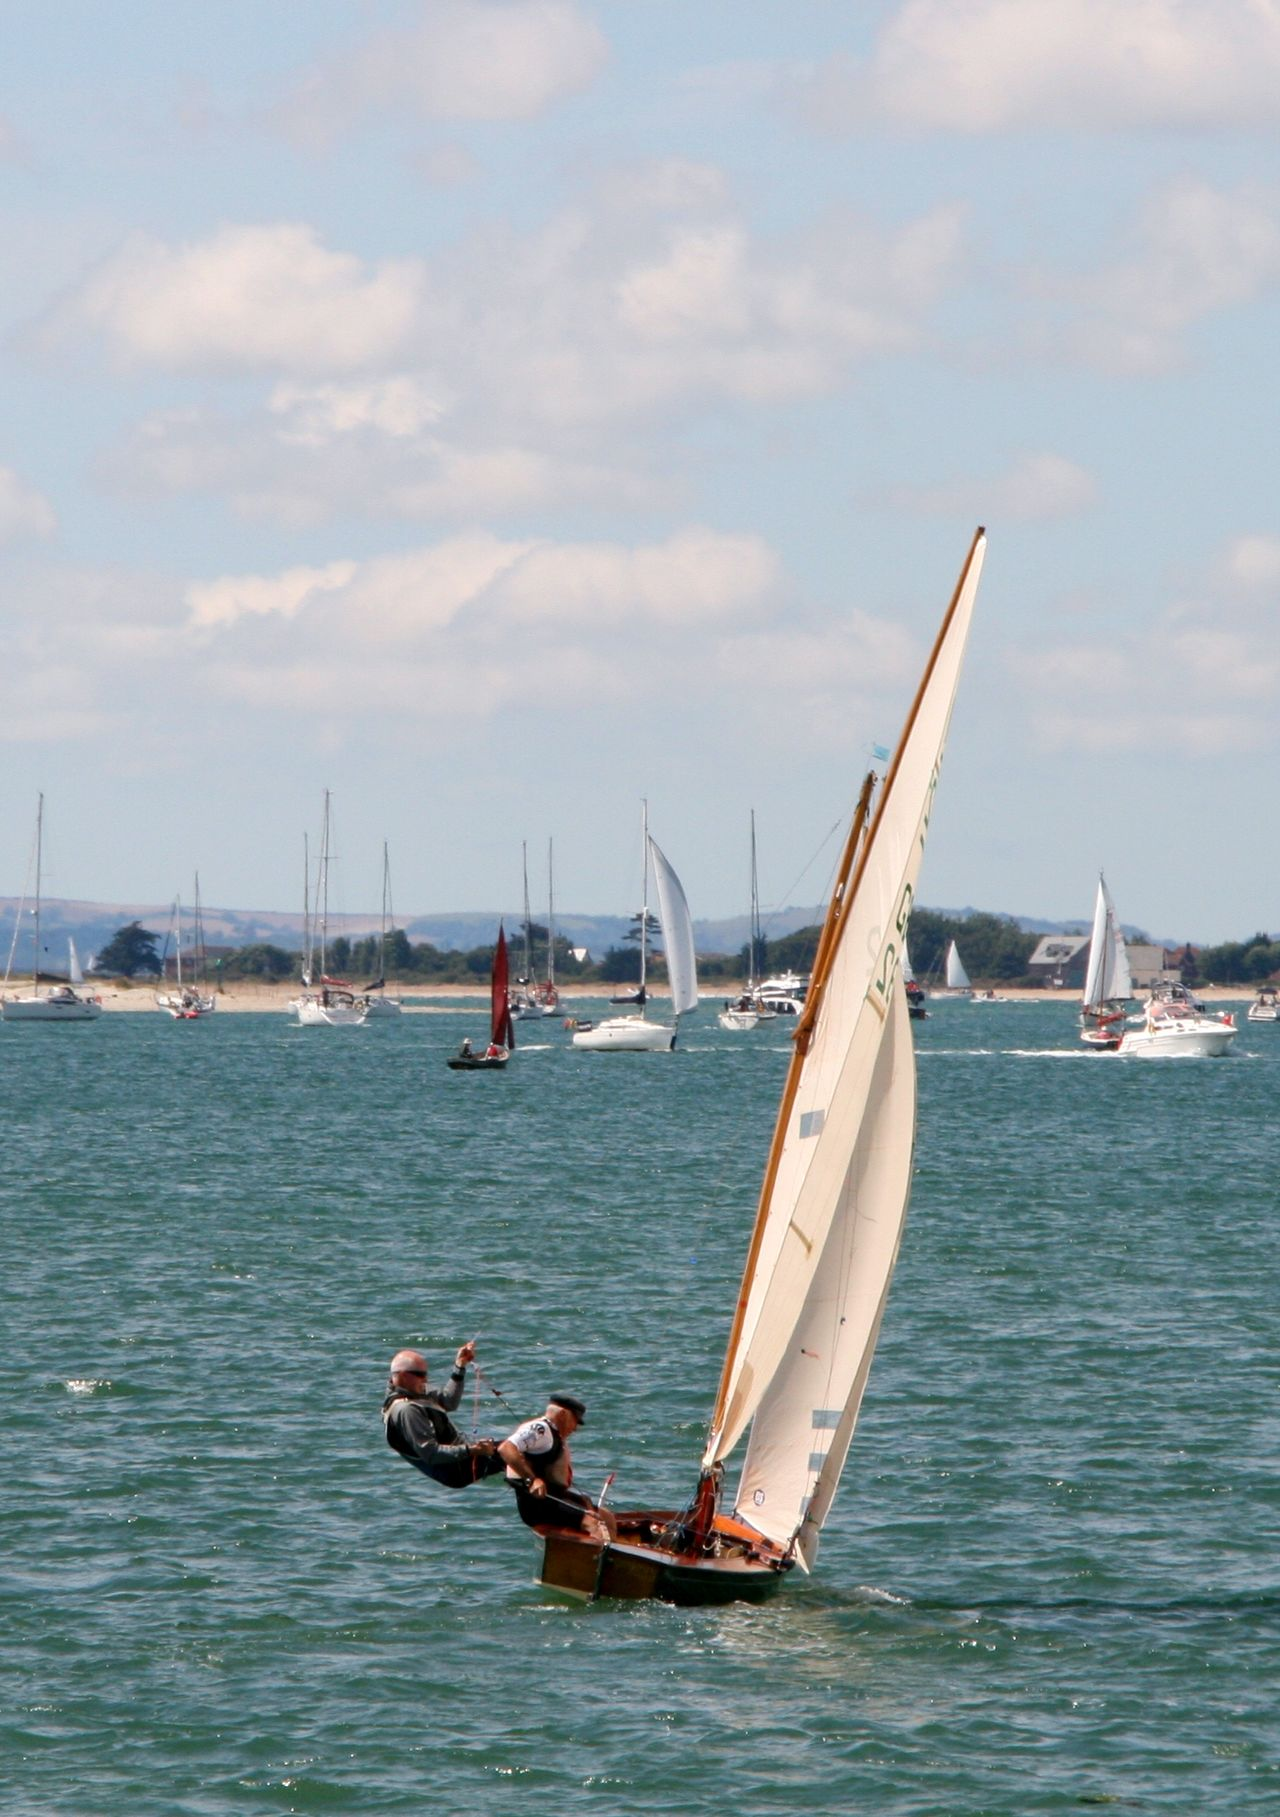 Sailing Boat Chichester Harbour Sailboat Sailing Sea Water The Essence Of Summer